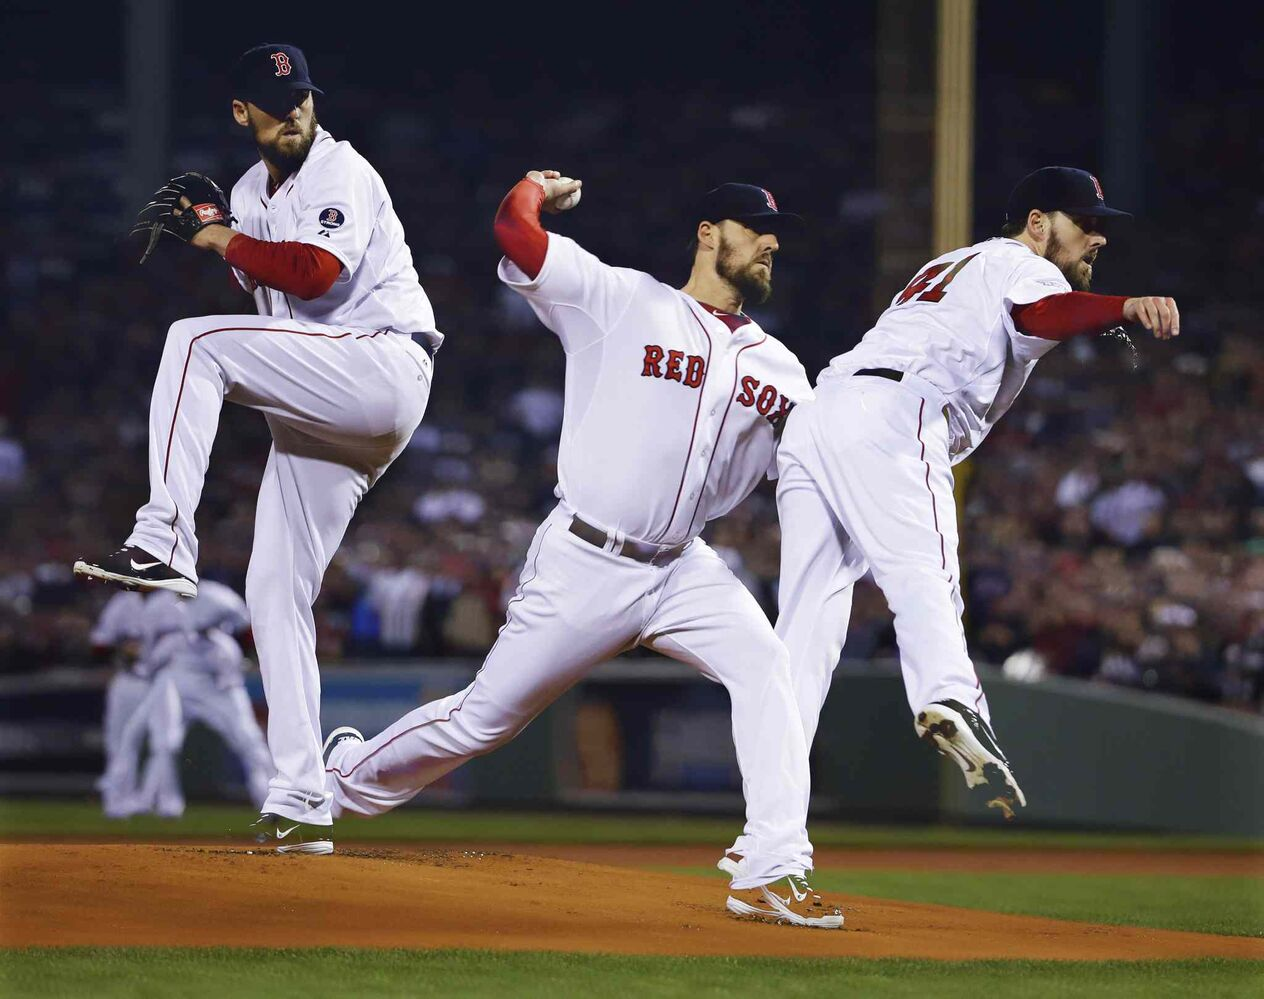 In a multiple exposure, Boston Red Sox starting pitcher John Lackey throws during the first inning.